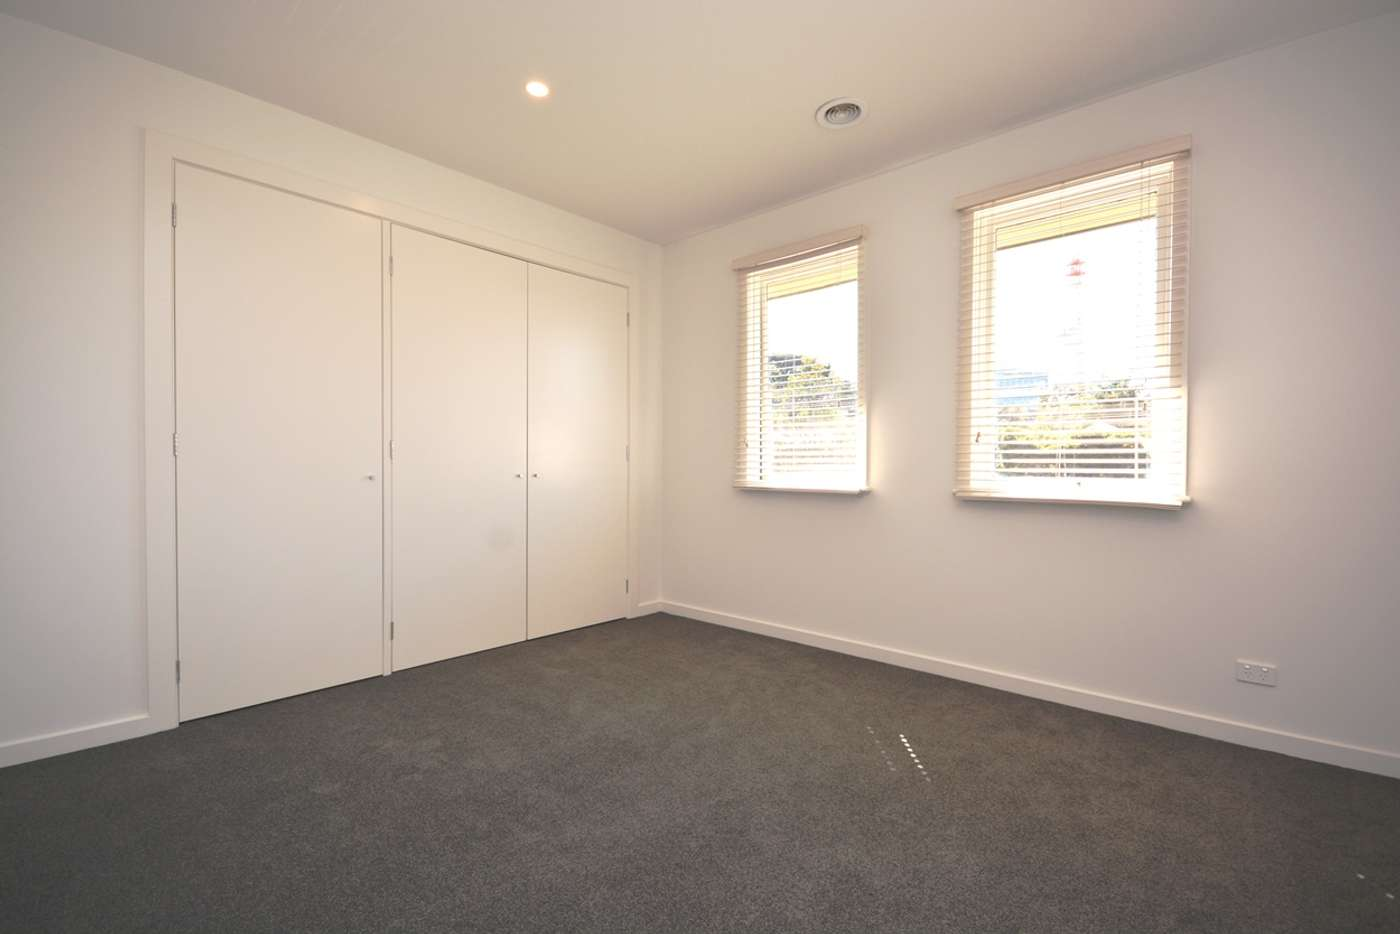 Seventh view of Homely townhouse listing, 247 Hotham Street, Elsternwick VIC 3185